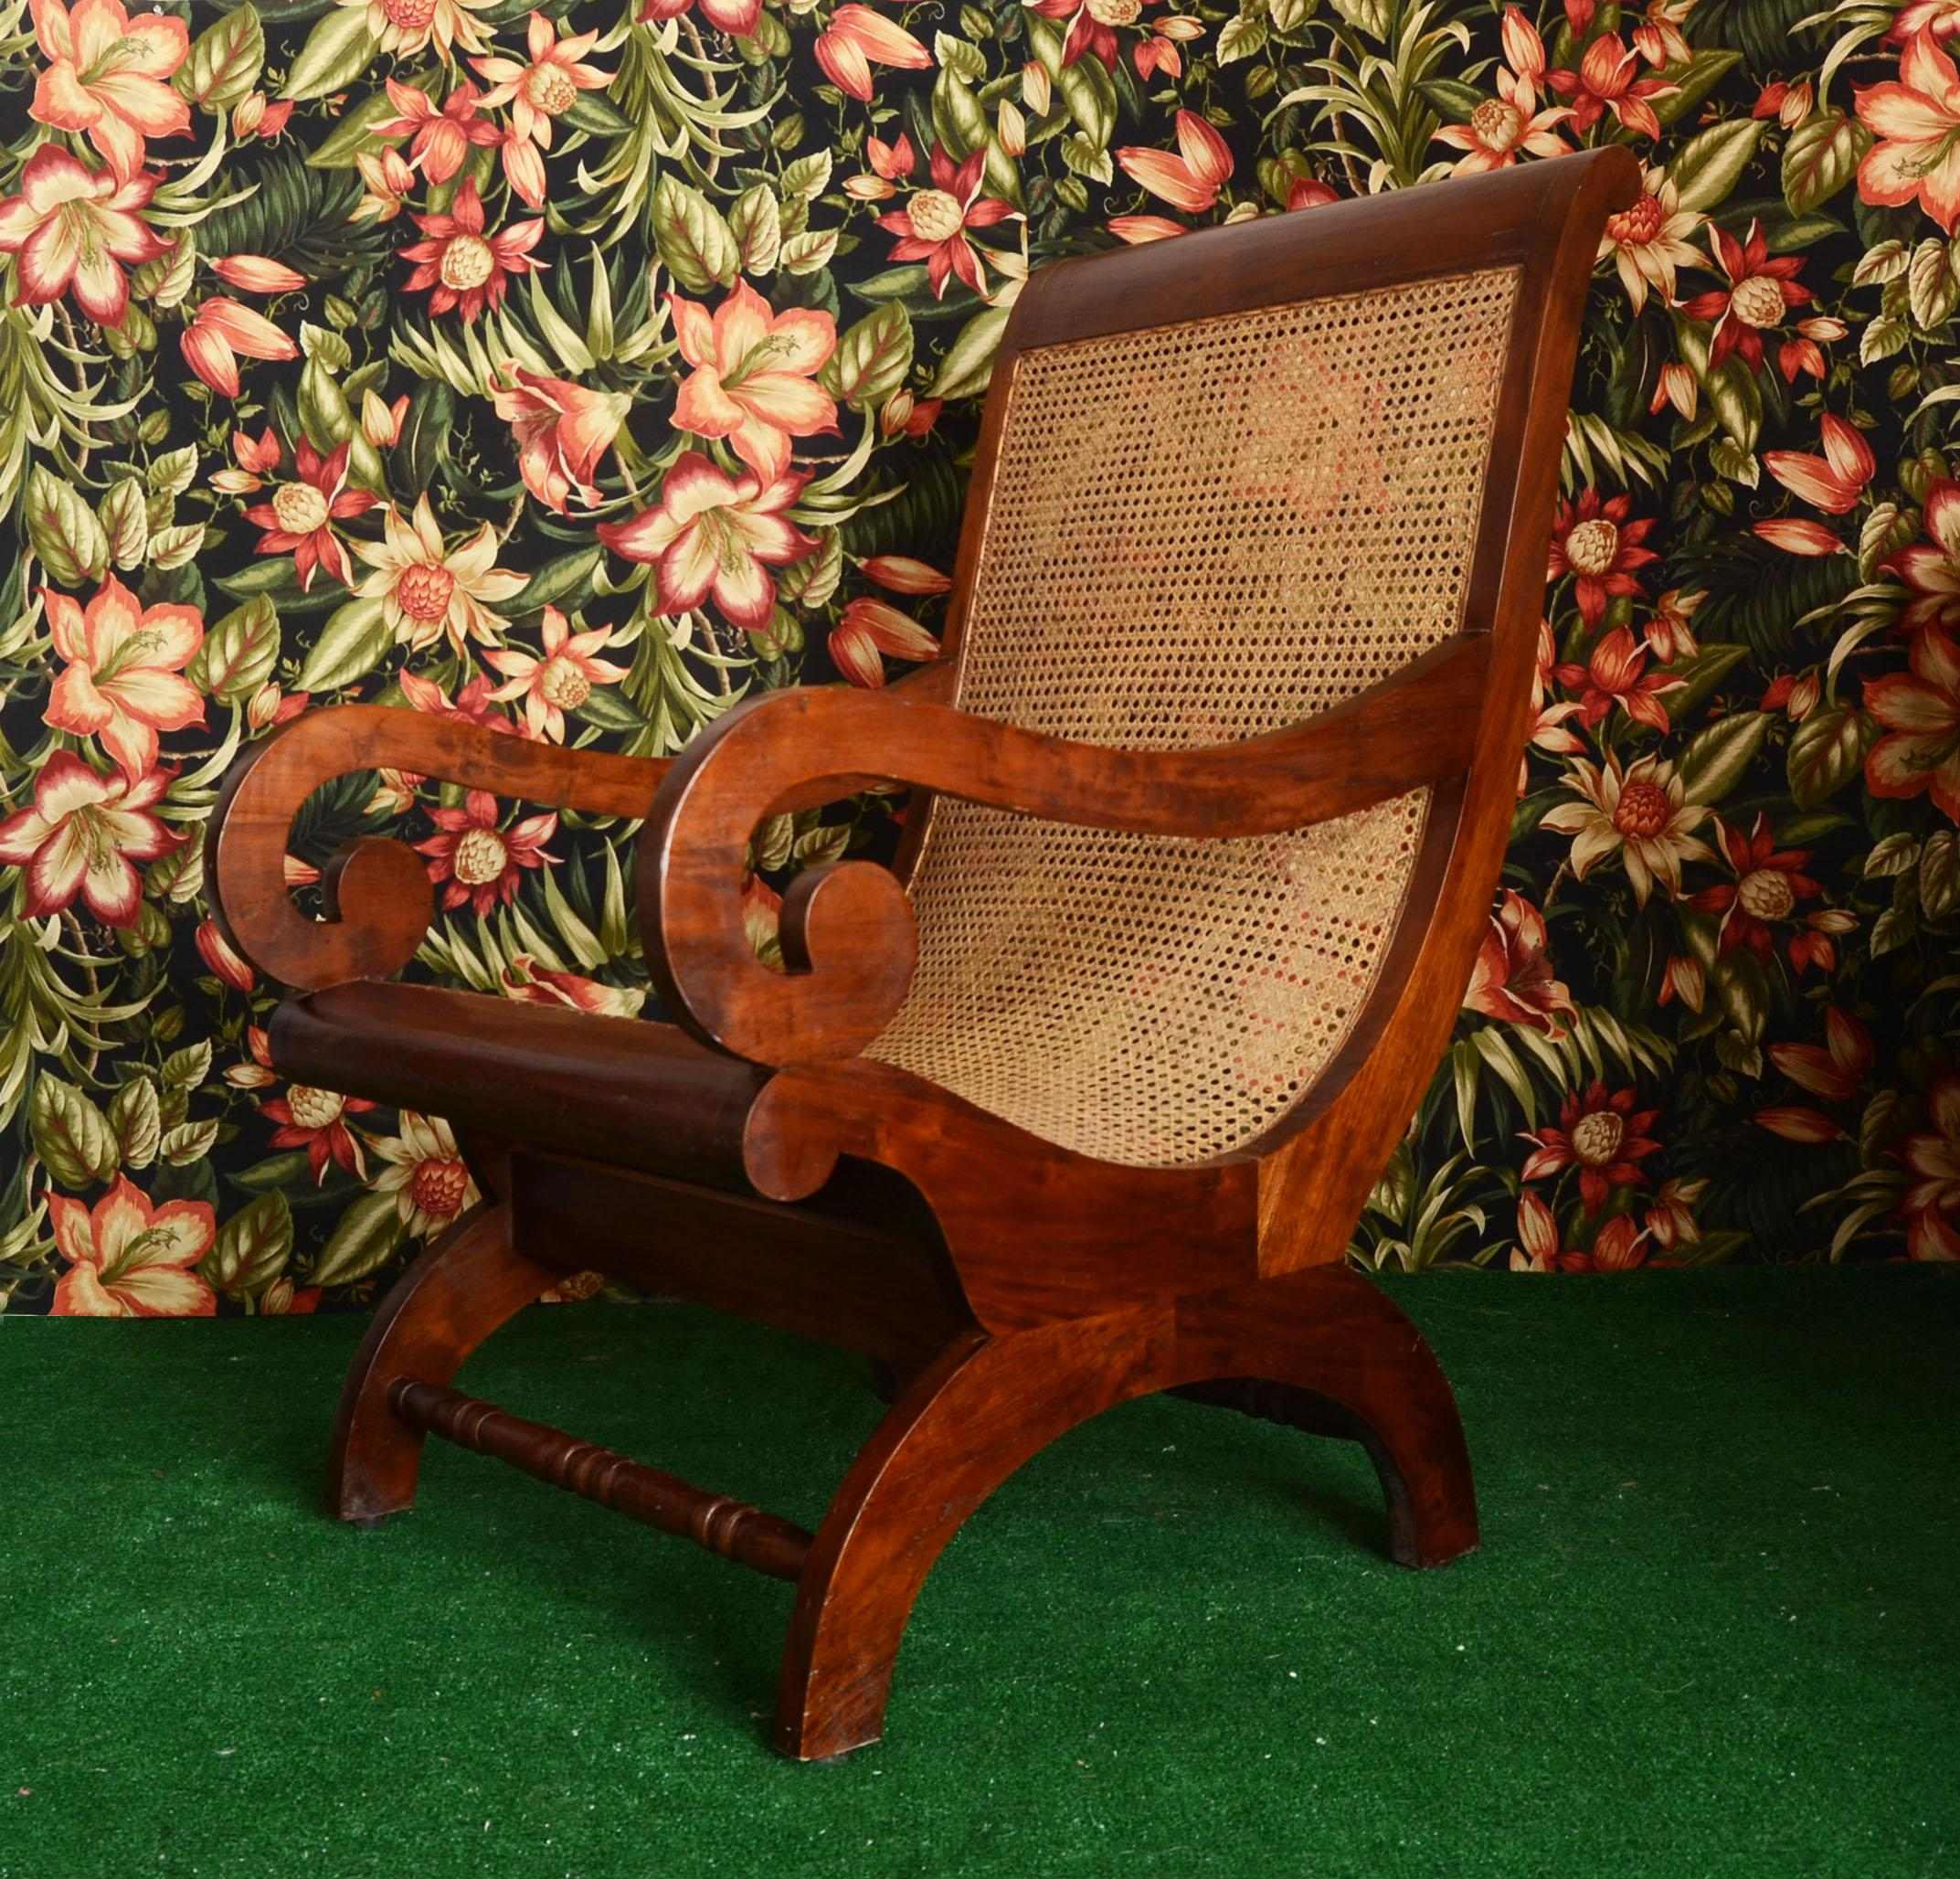 Amazing Antique Large Mahogany British Colonial Plantation Chair With  Wicker Cane Seat. Drop Dead Stunning